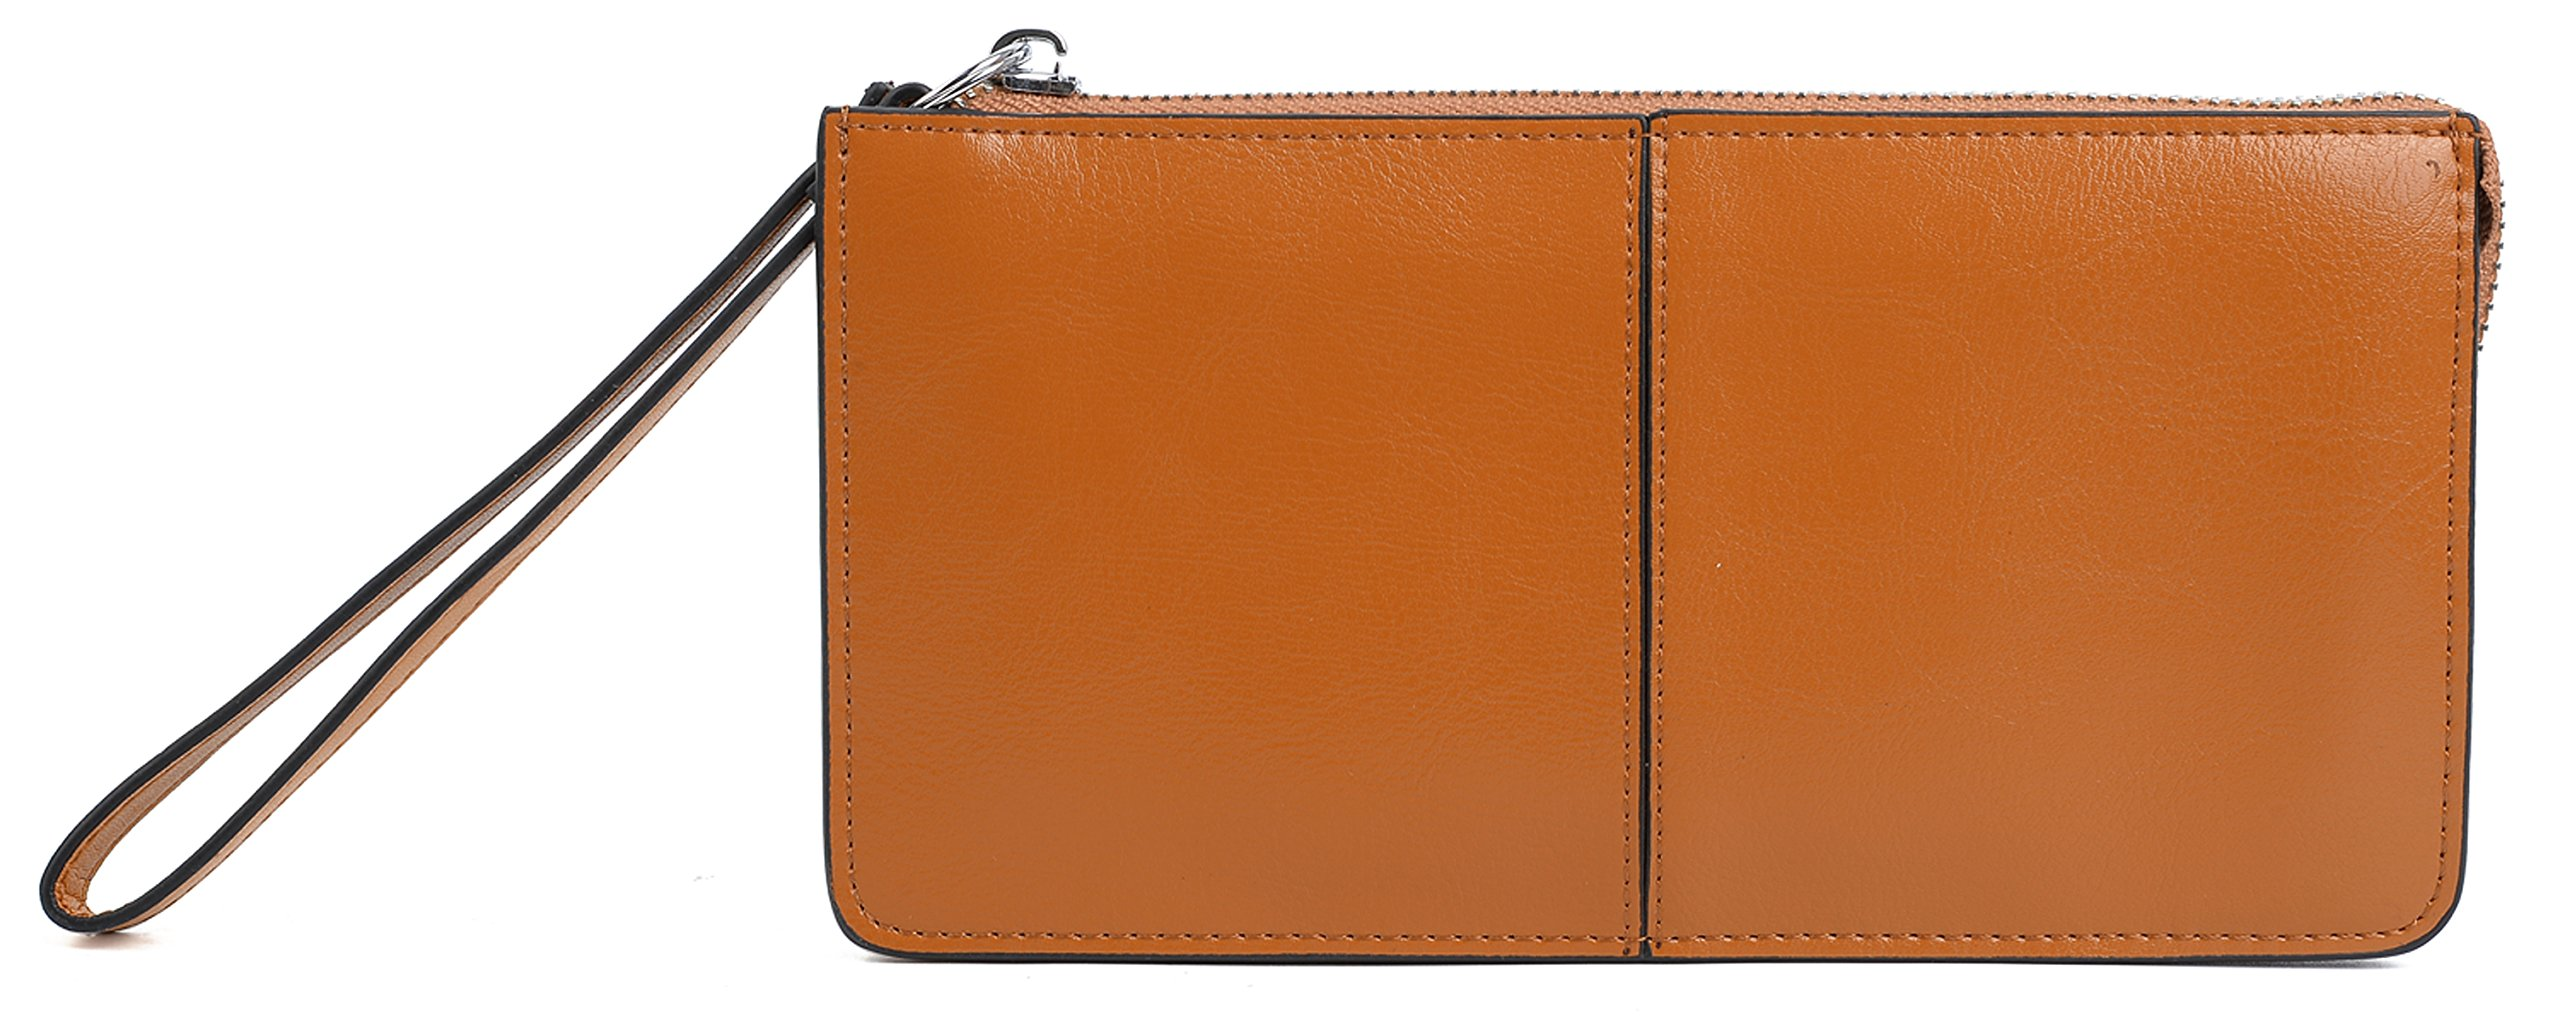 YALUXE Women's Leather Zipper Clutch Wristlet Wallet for iPhone 7 Plus/Galaxy S5 Orange Brown